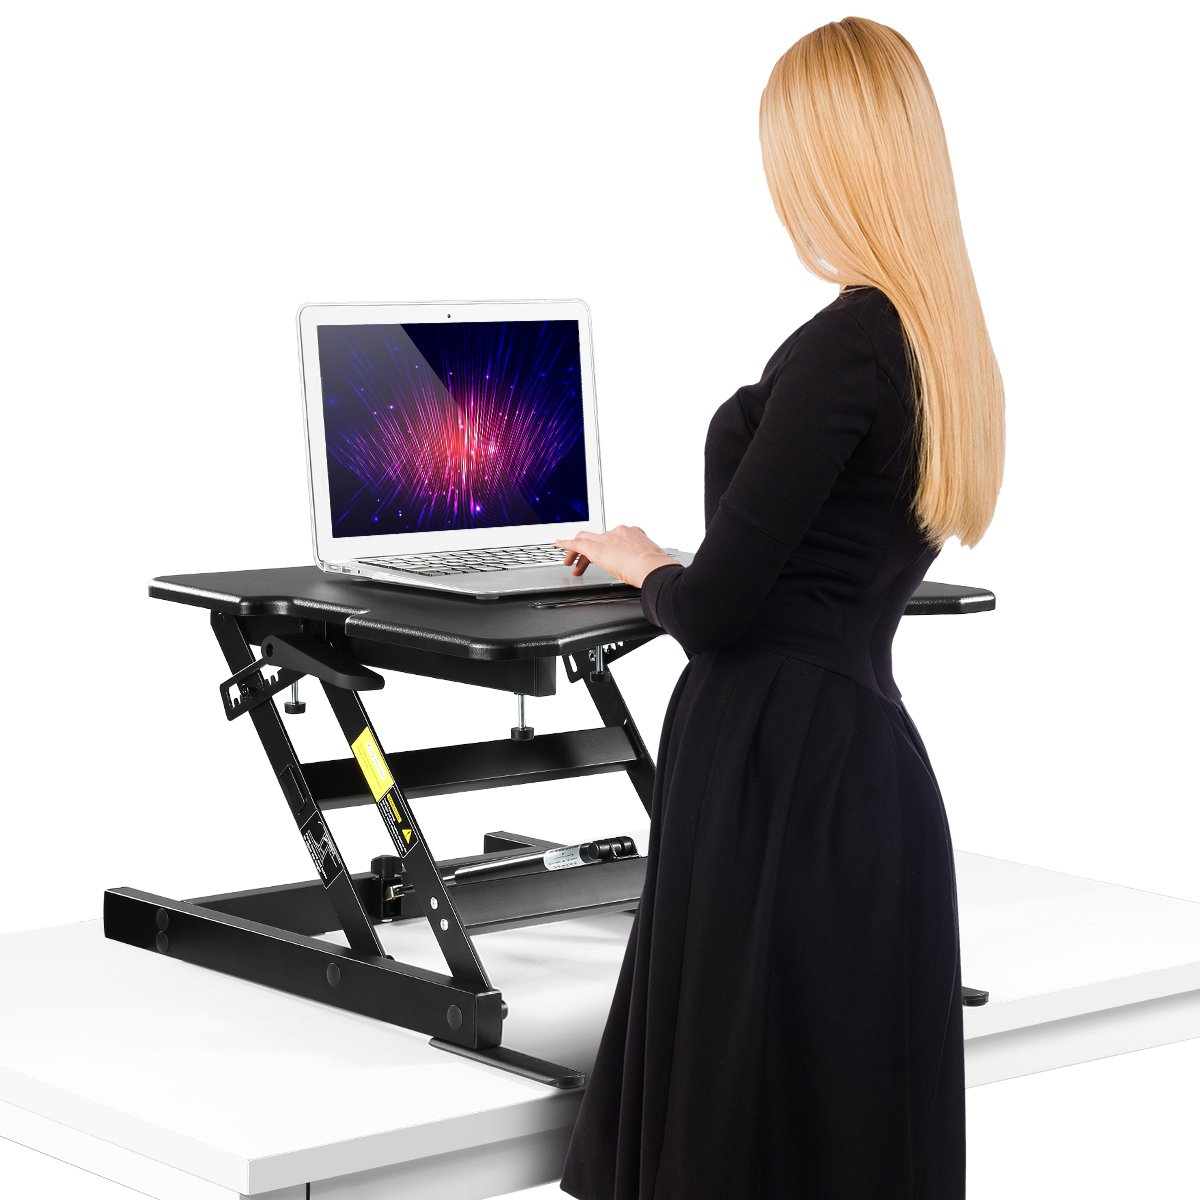 Height adjustable standing desk sit stand up Riser computure office study laptop